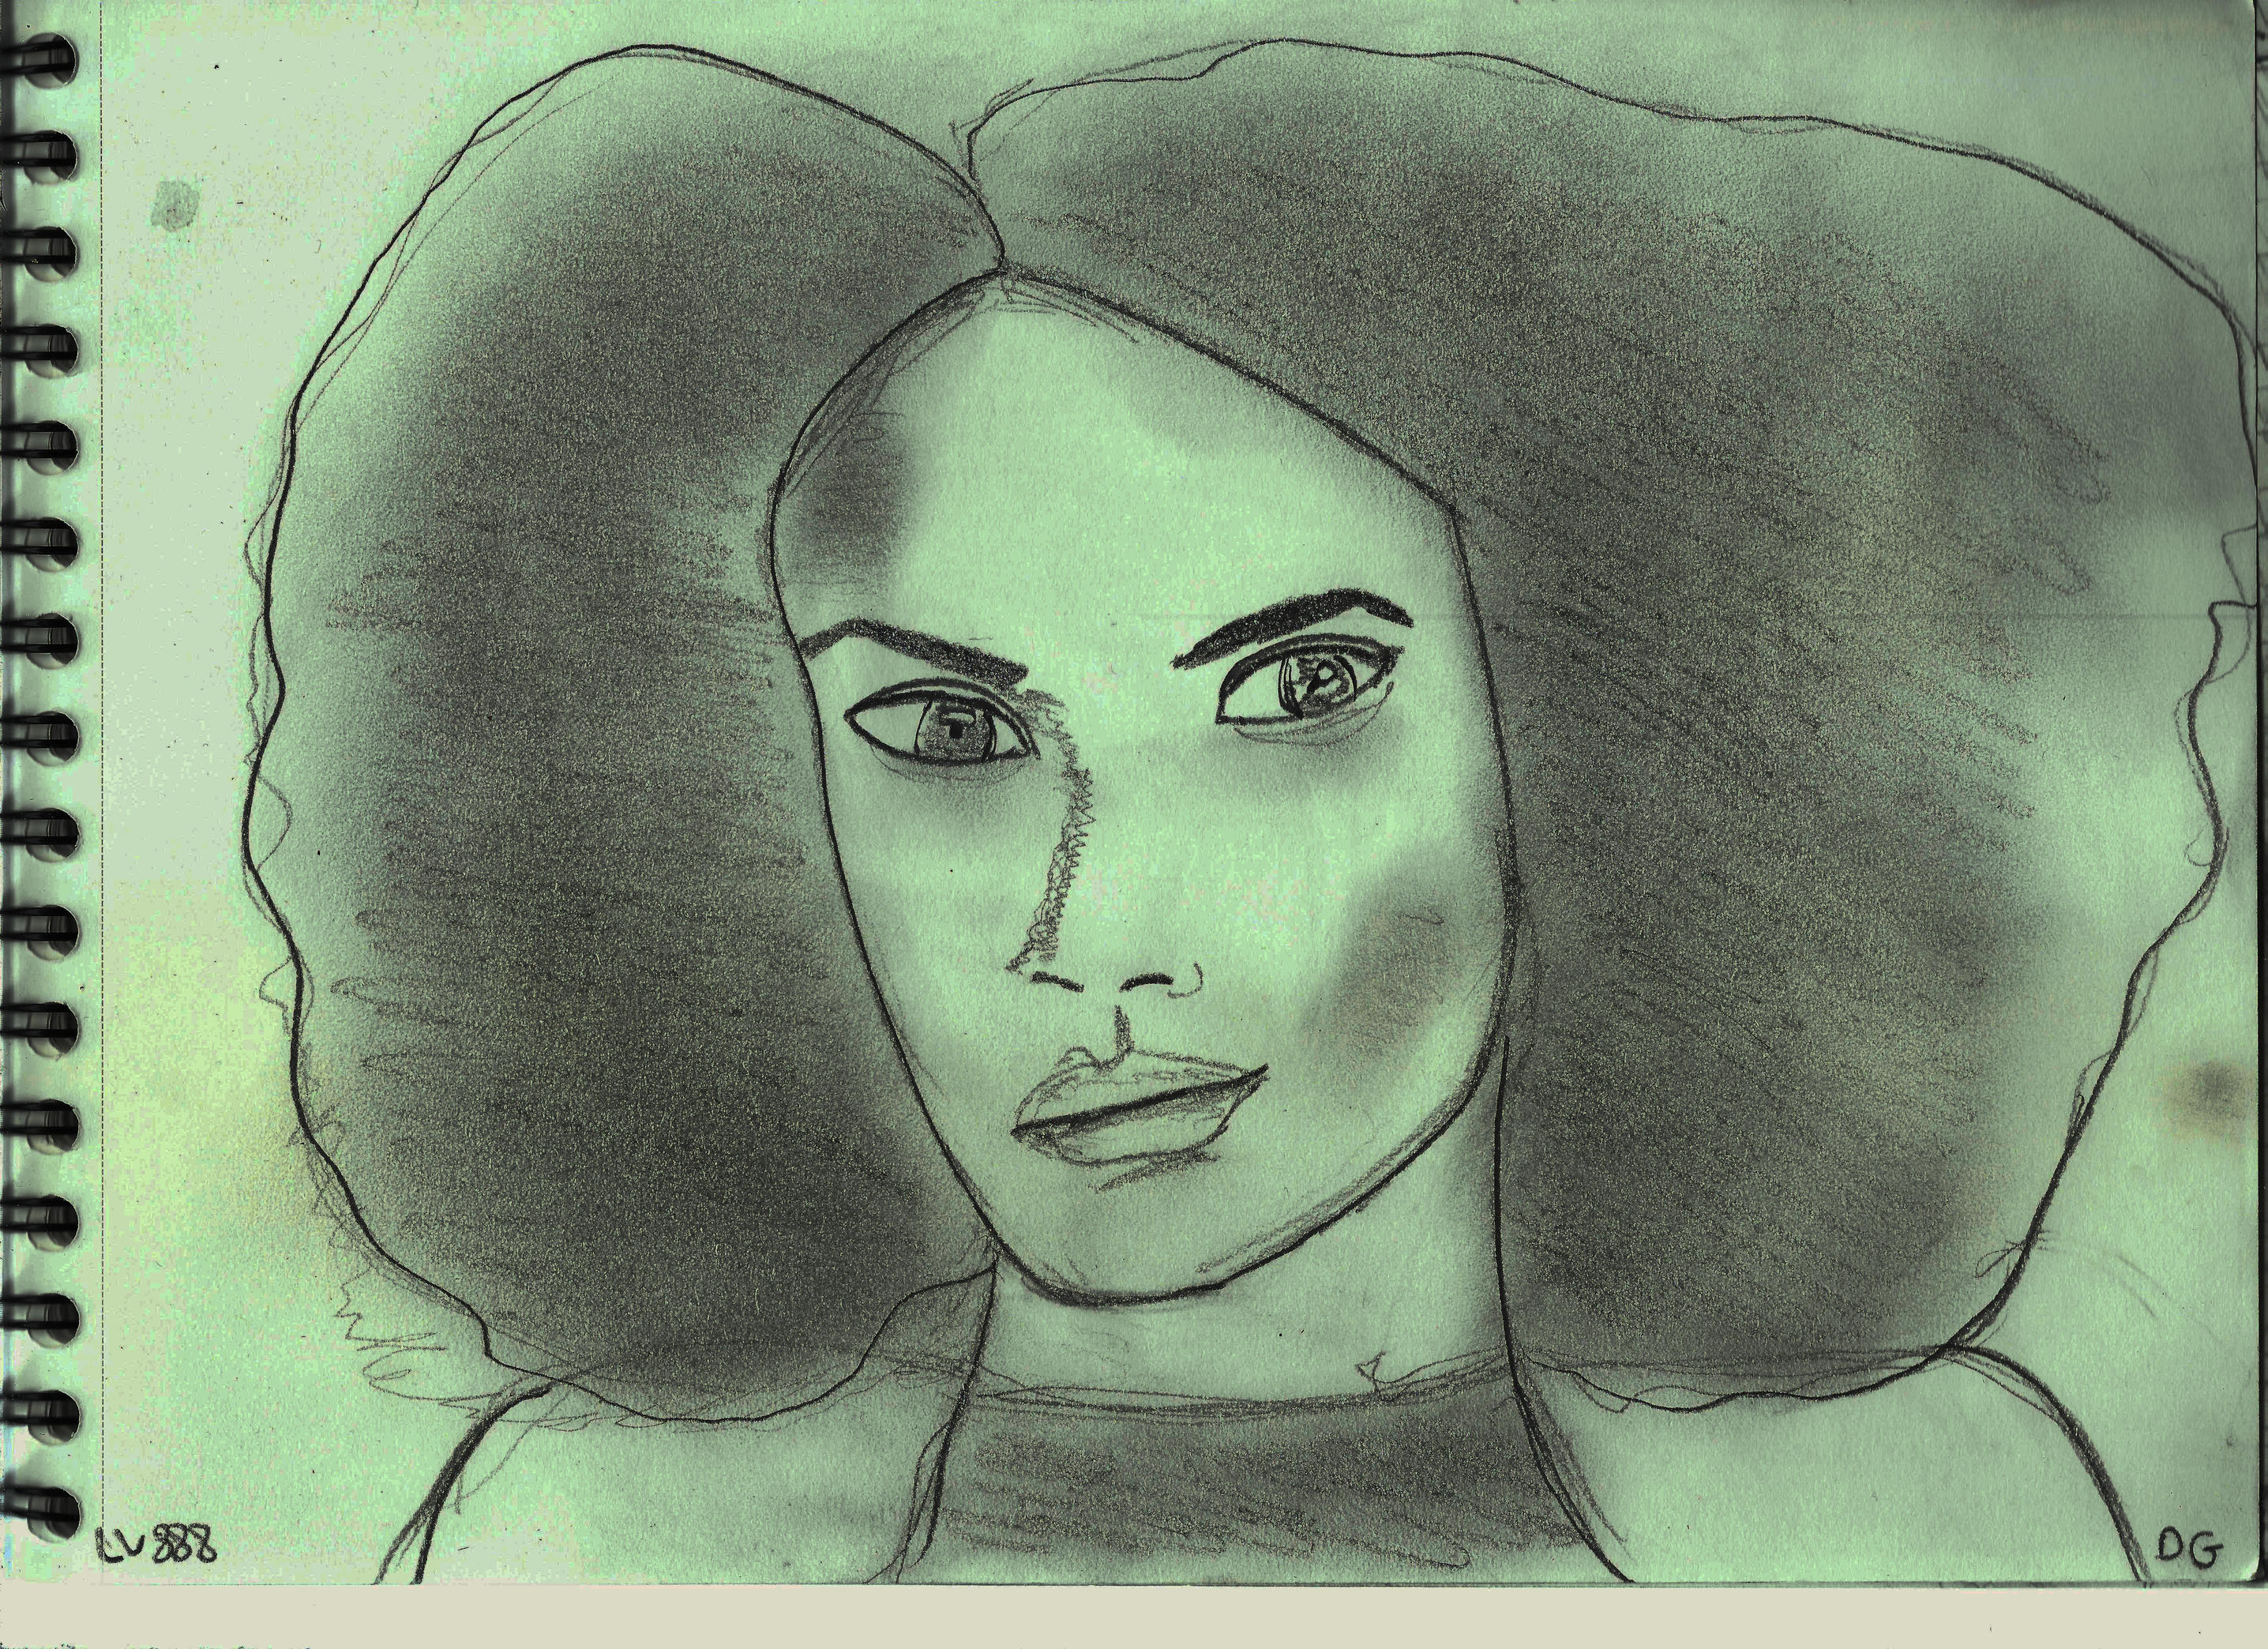 Woman Face Study N133 by lv888